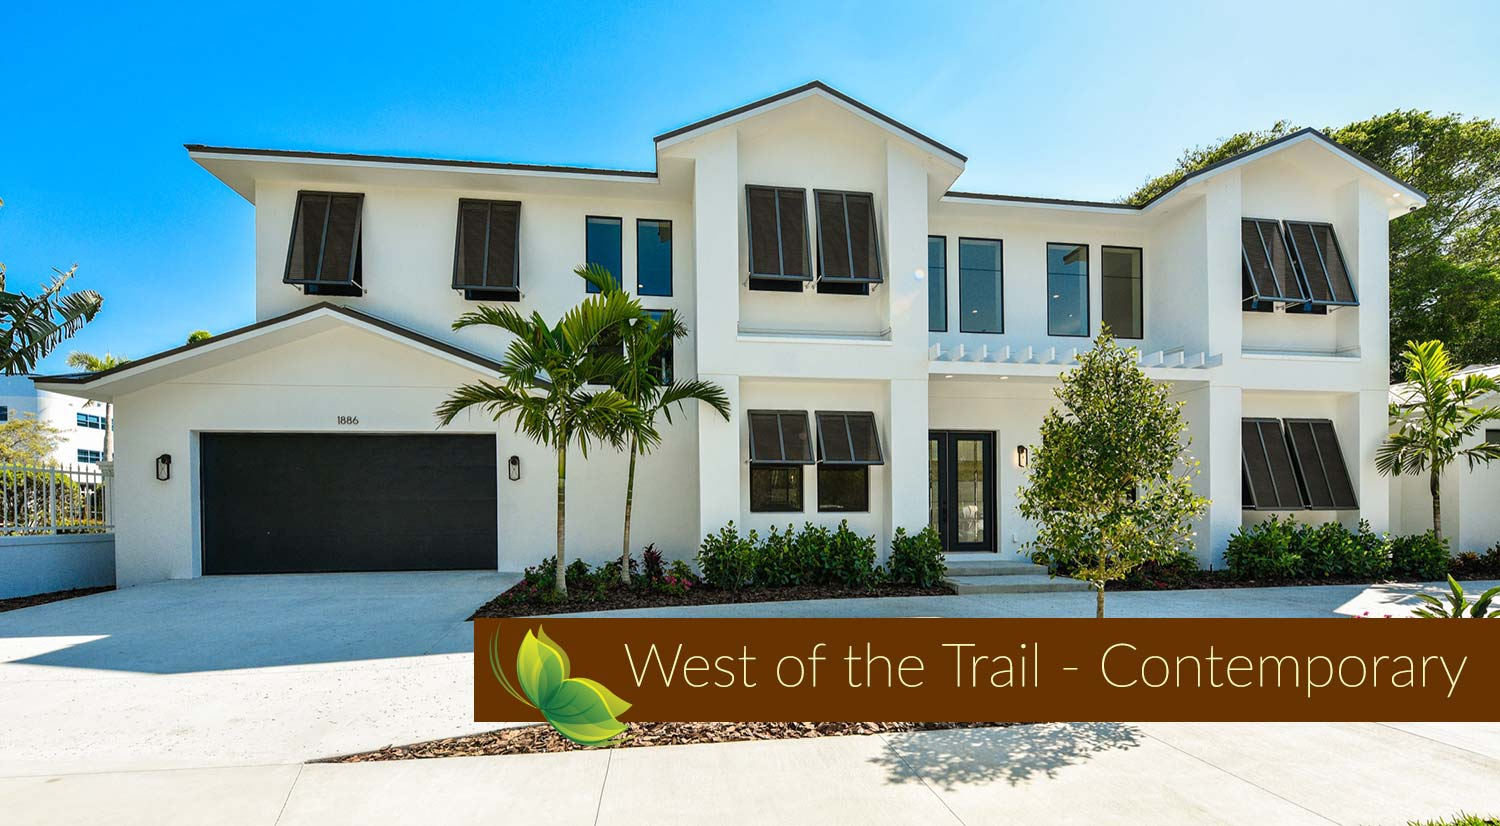 View The Virtual Tour For This Contemporary Home In Sarasota, FL